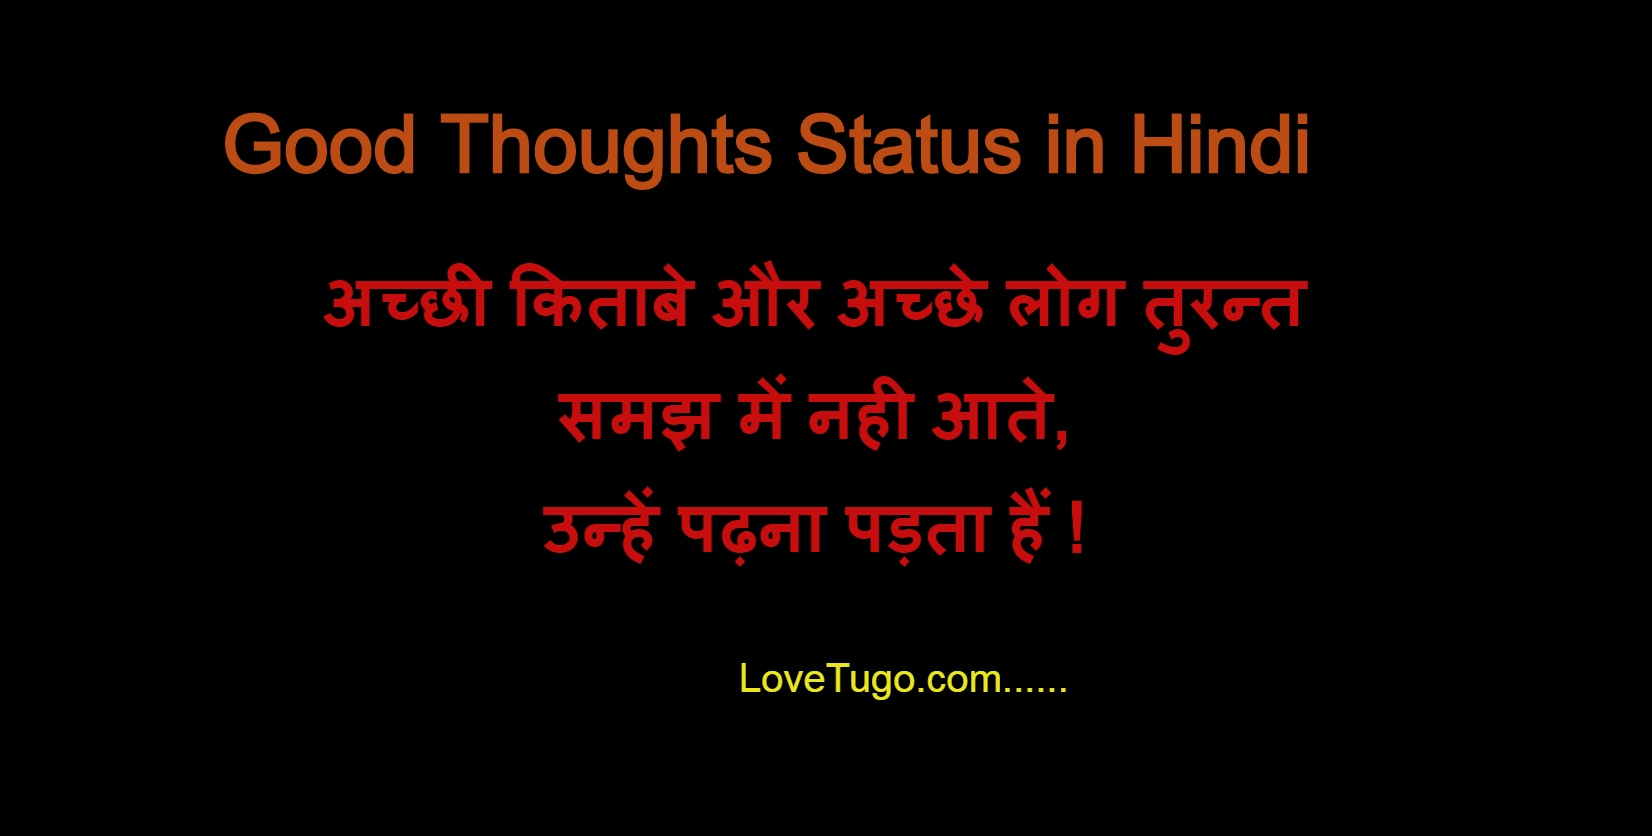 Good Thoughts Status in Hindi